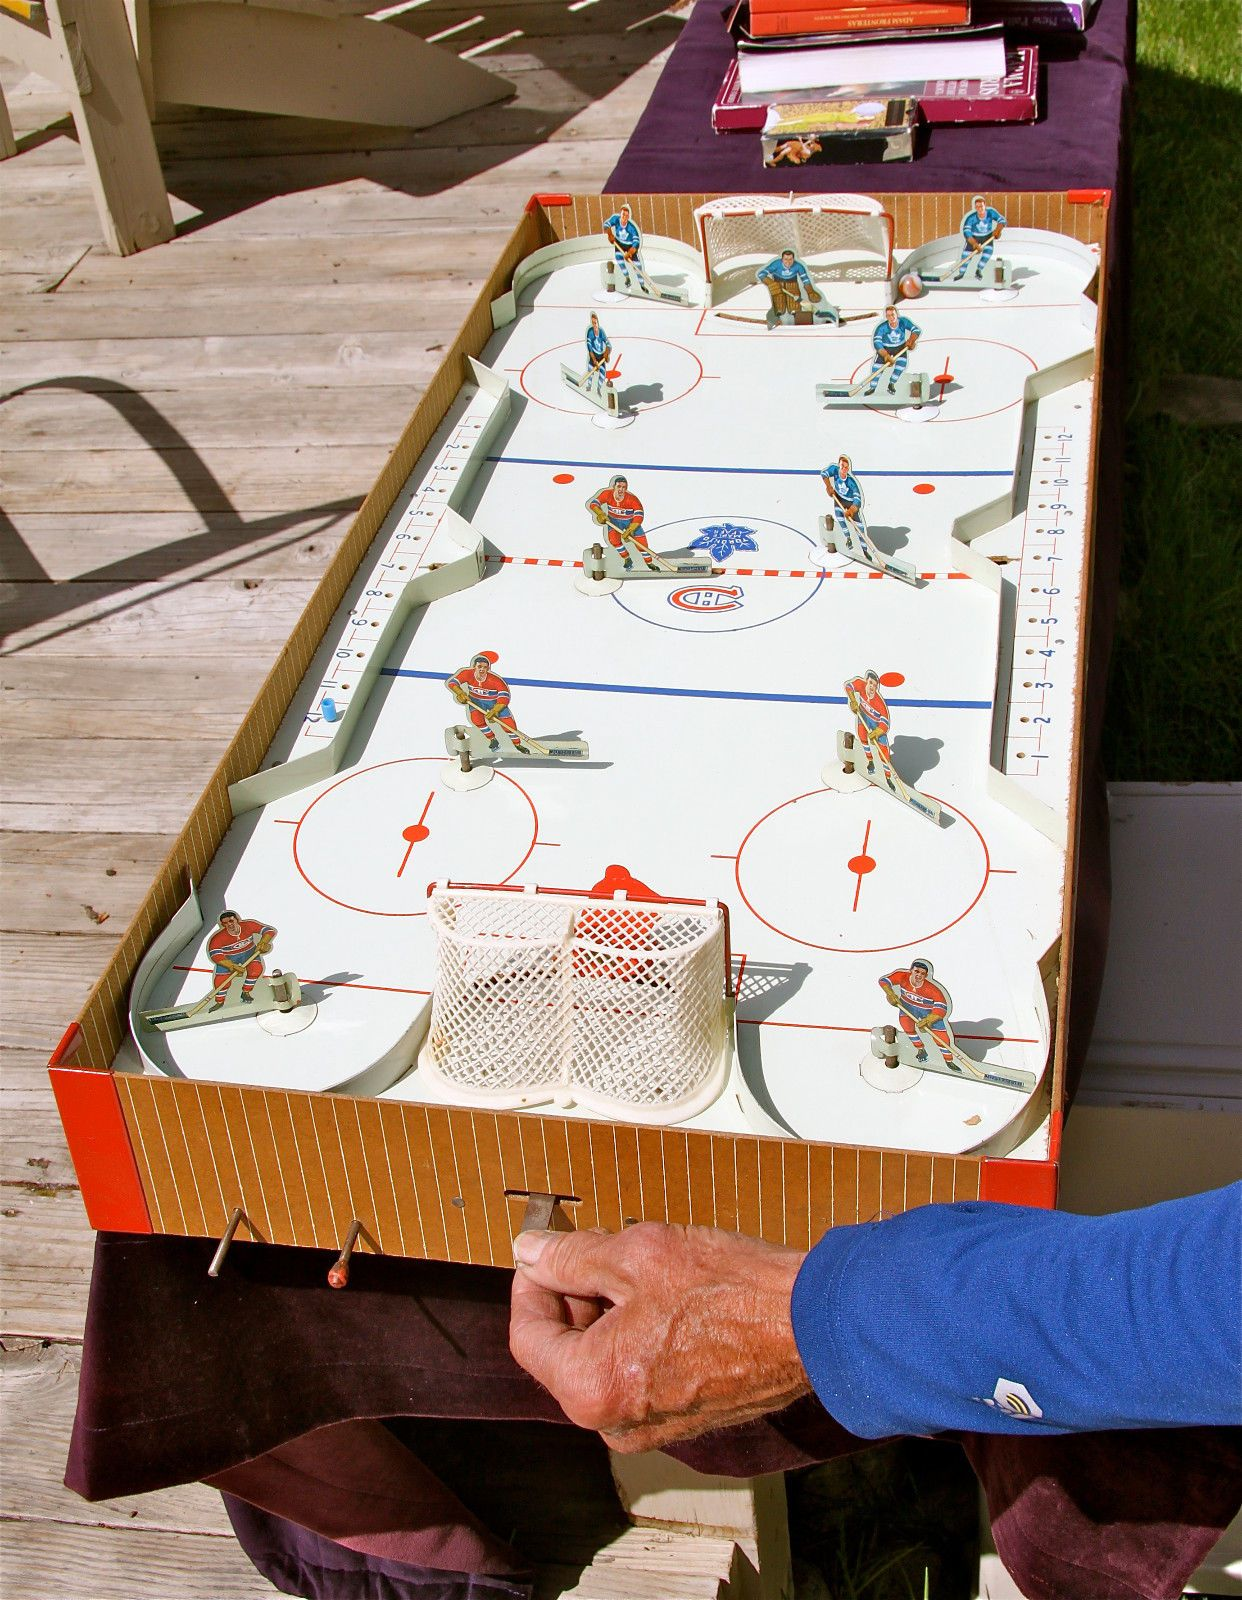 Eagle toys vintage table hockey game nhl pro canadians near mint with box